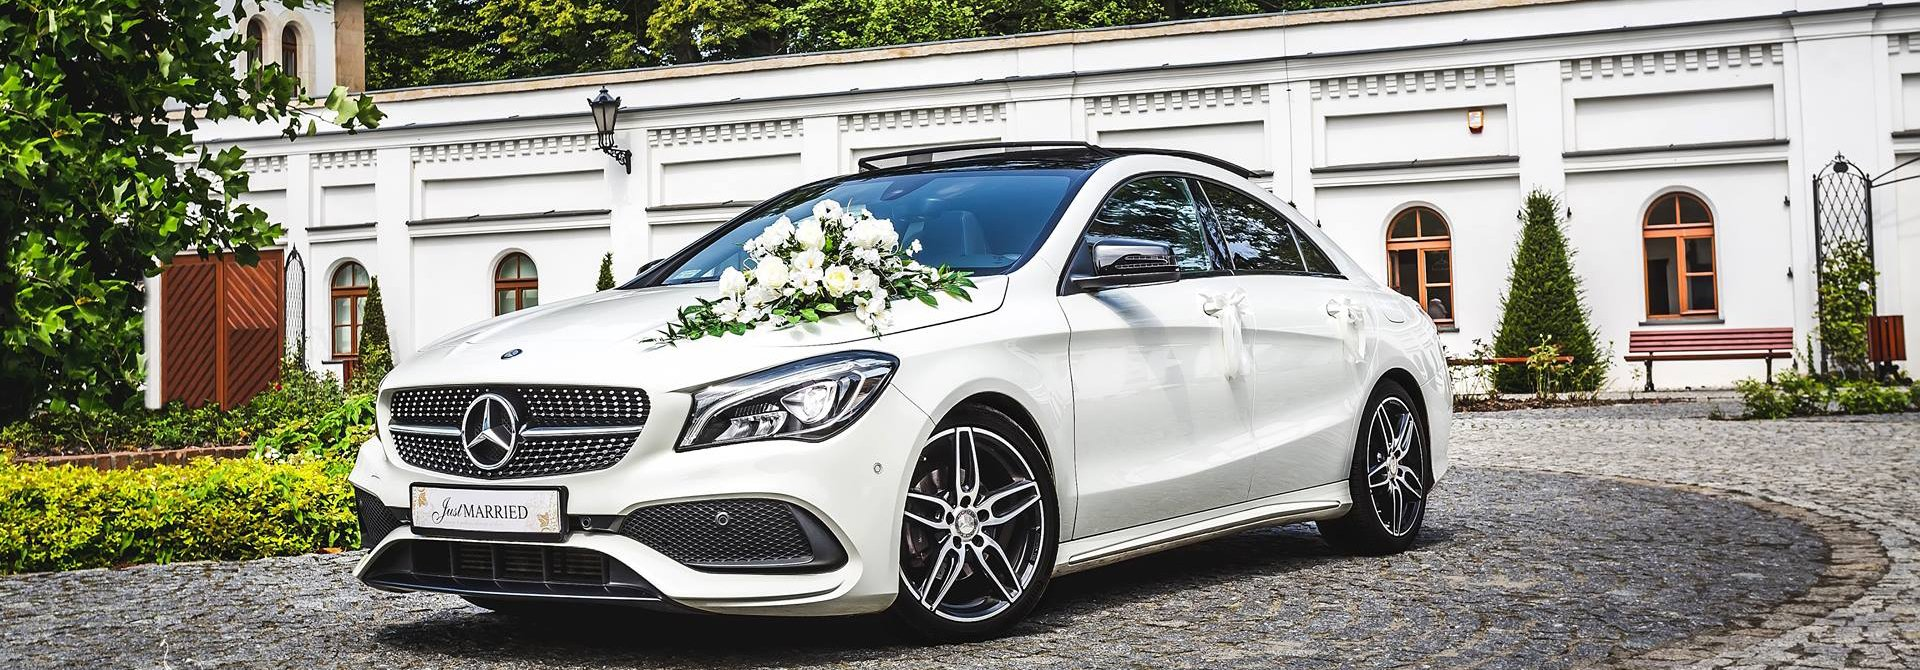 Auto do ślubu - Mercedes CLA